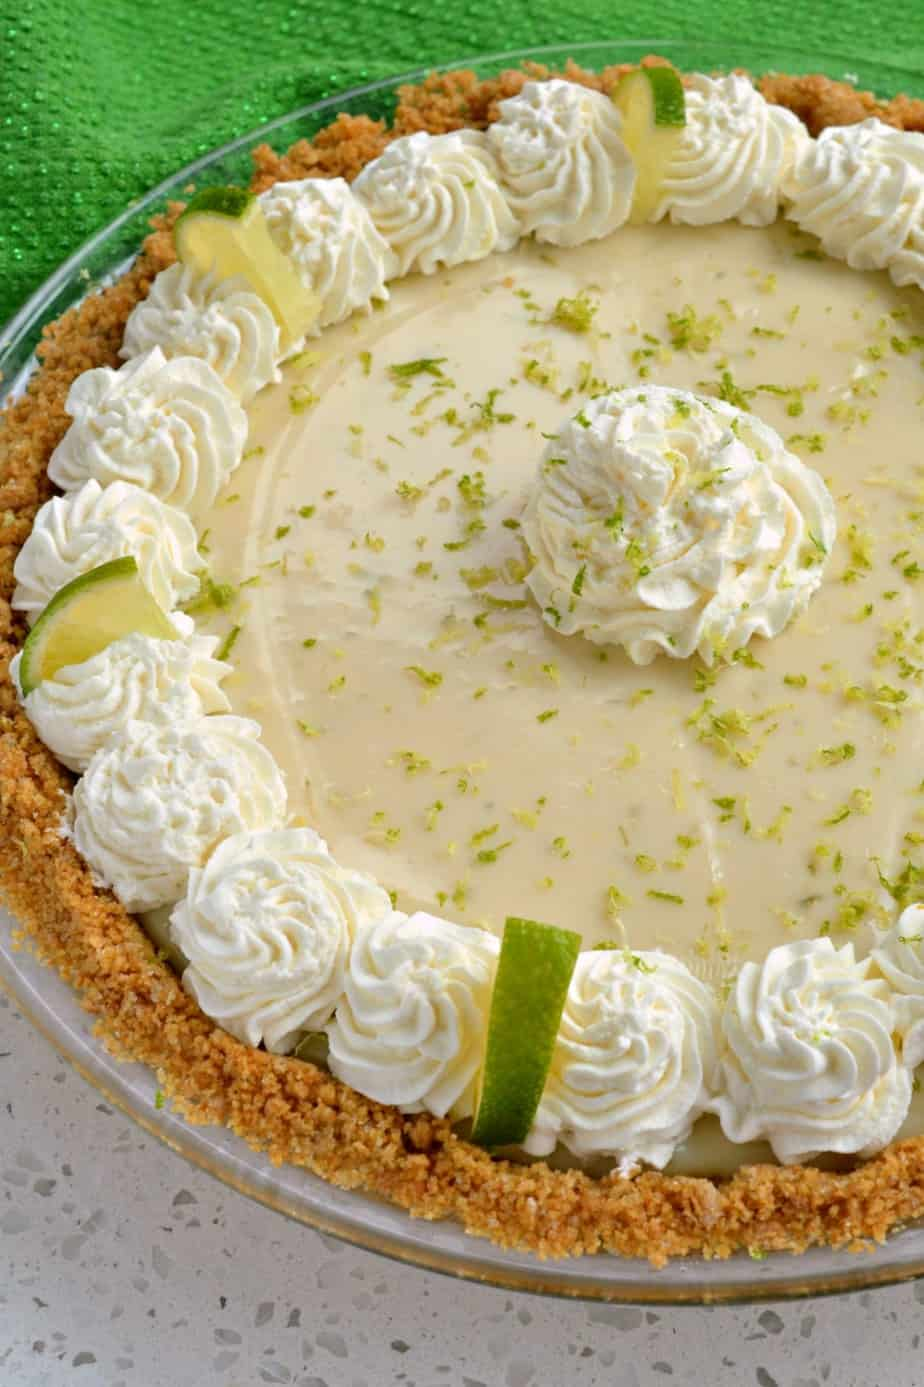 This easy key lime pie will quickly become a family favorite for birthdays, holidays and potlucks.